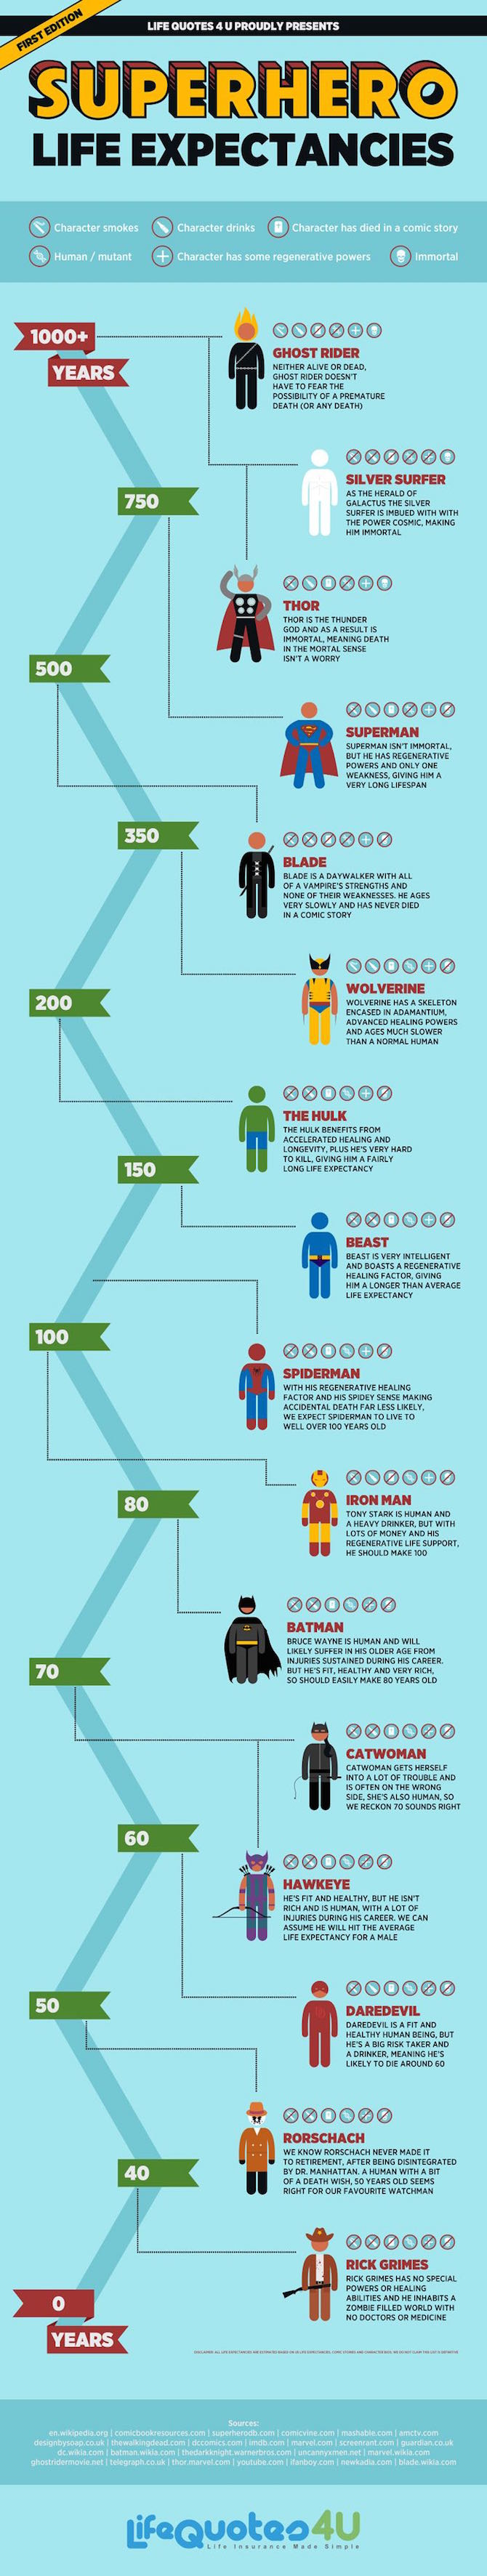 SuperheroLifeExpectancies